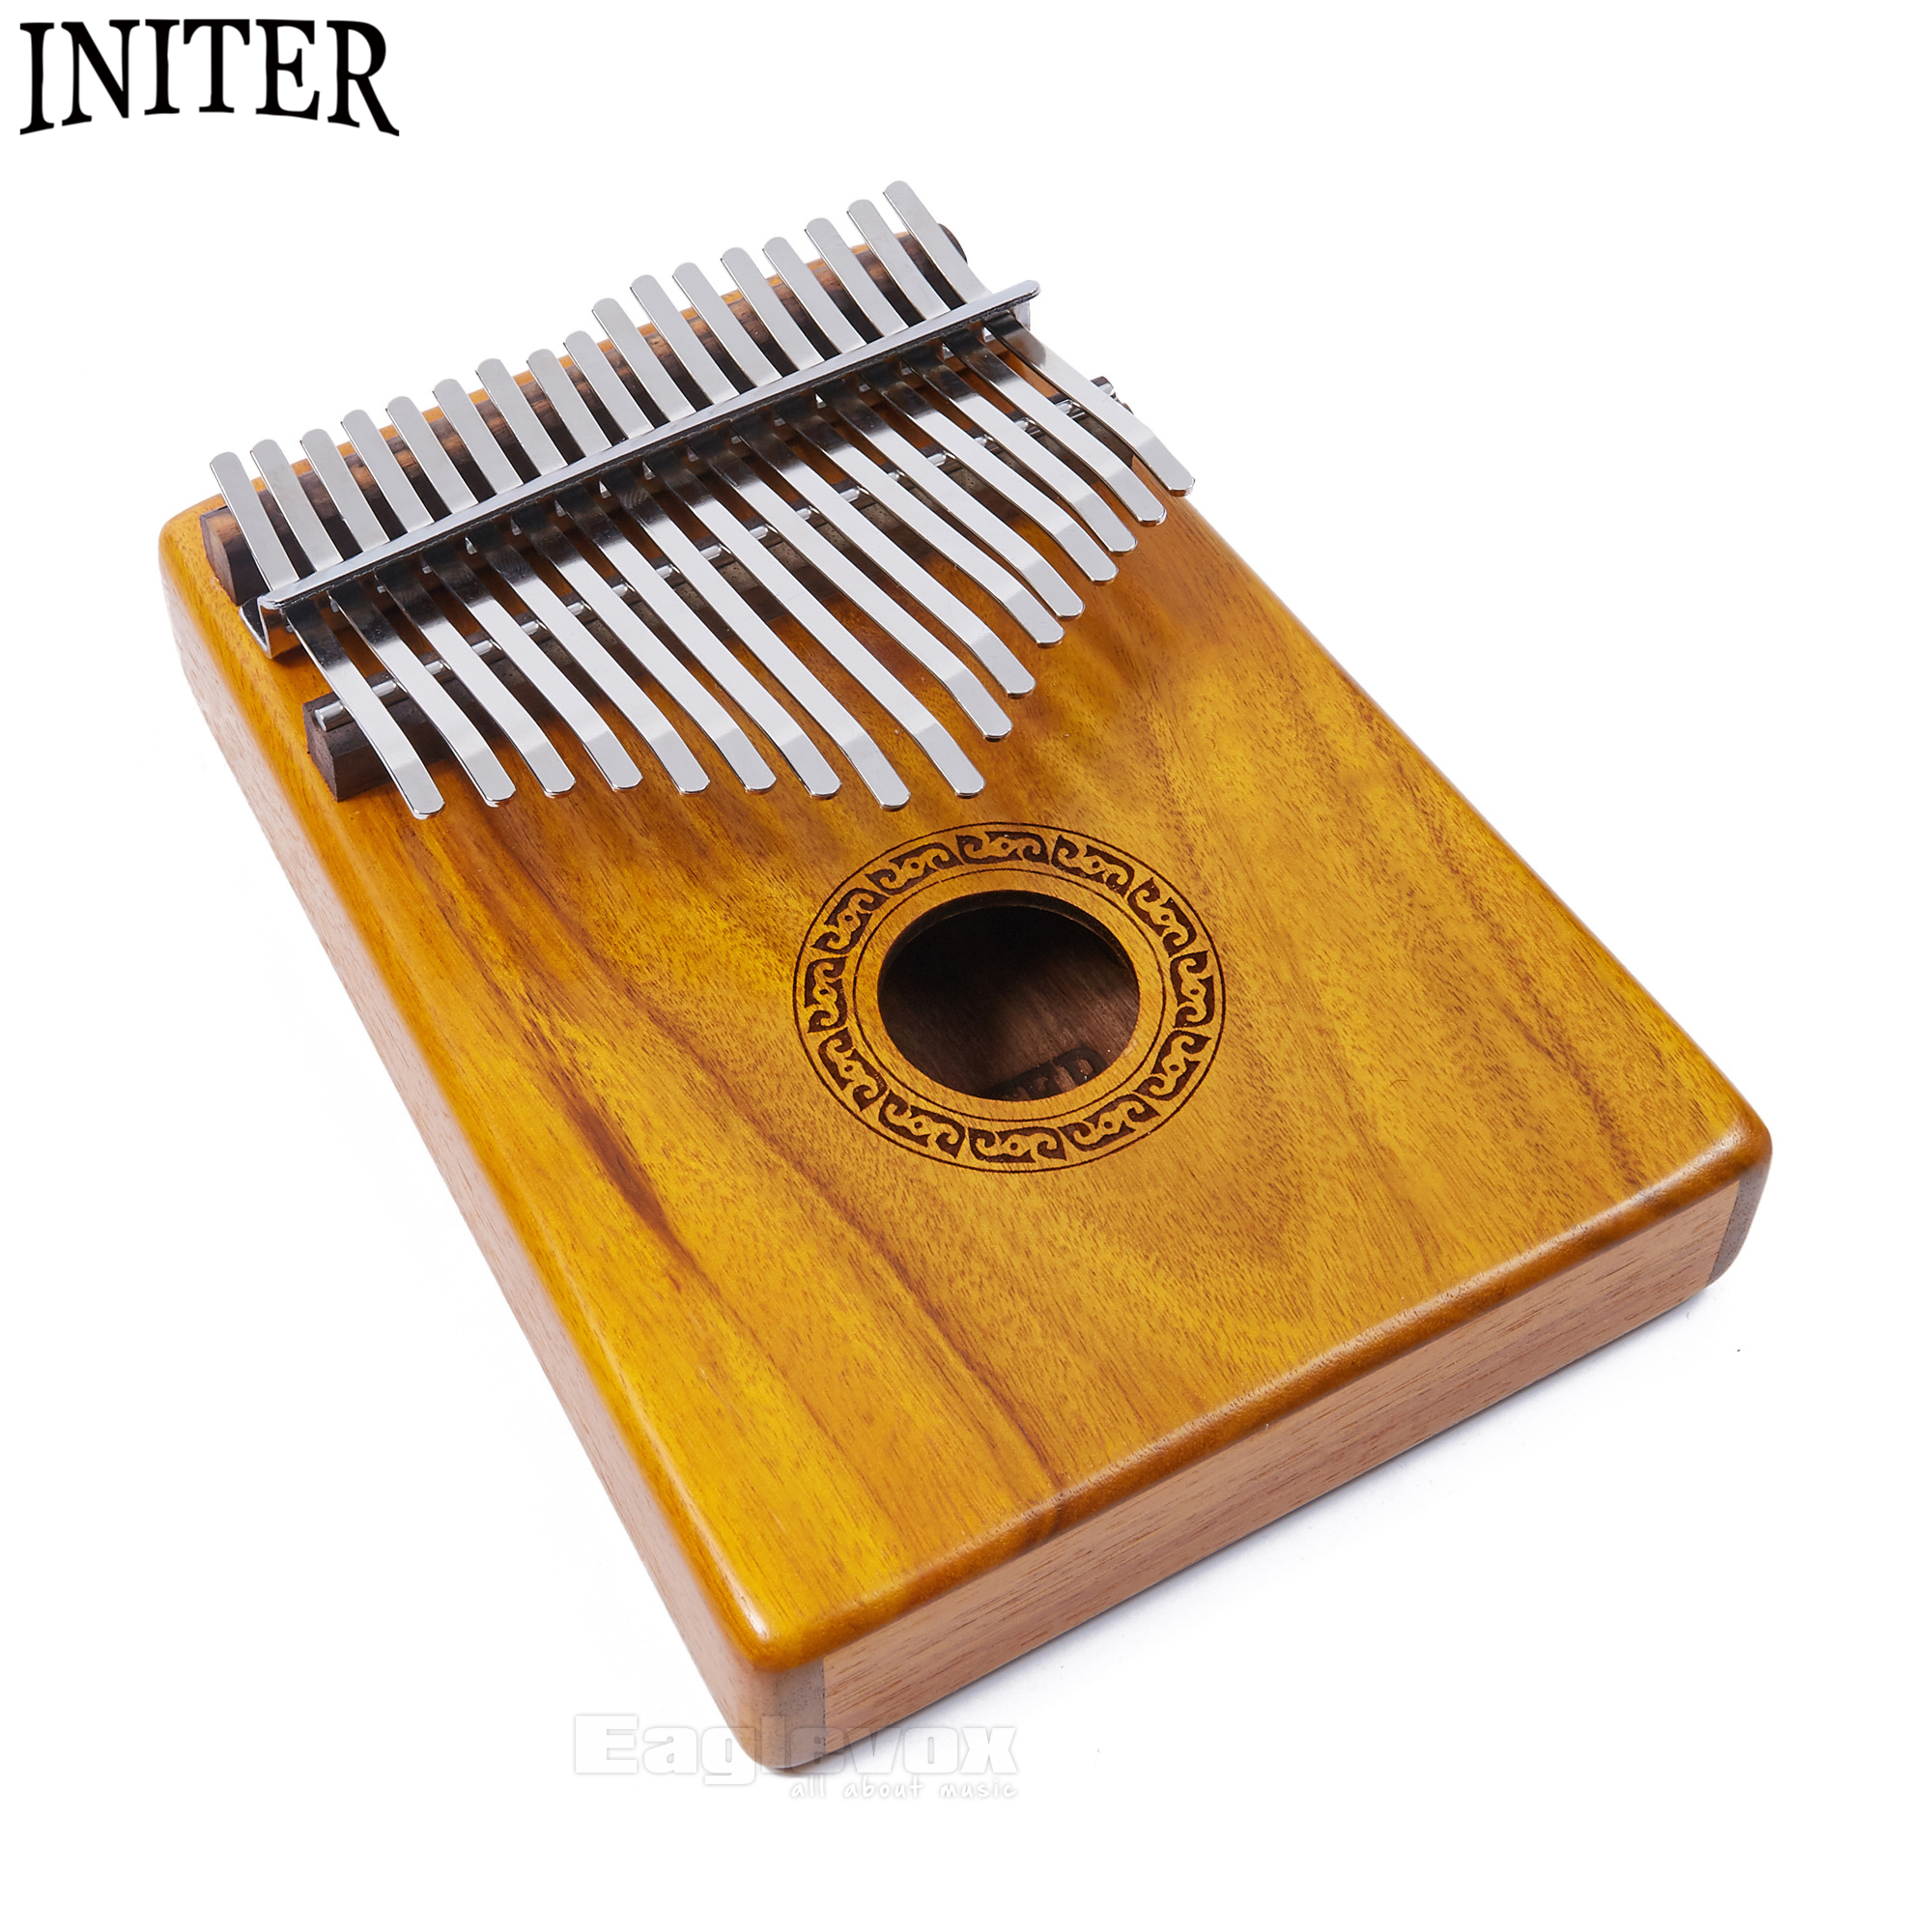 Initer Kalimba 17 Keys Acacia Thumb Piano Traditional African Music Instrument With Free Carry Bag and Tuning Tool 17 Notes велосипедная корзина acacia mtb 5 5 bl bag acacia